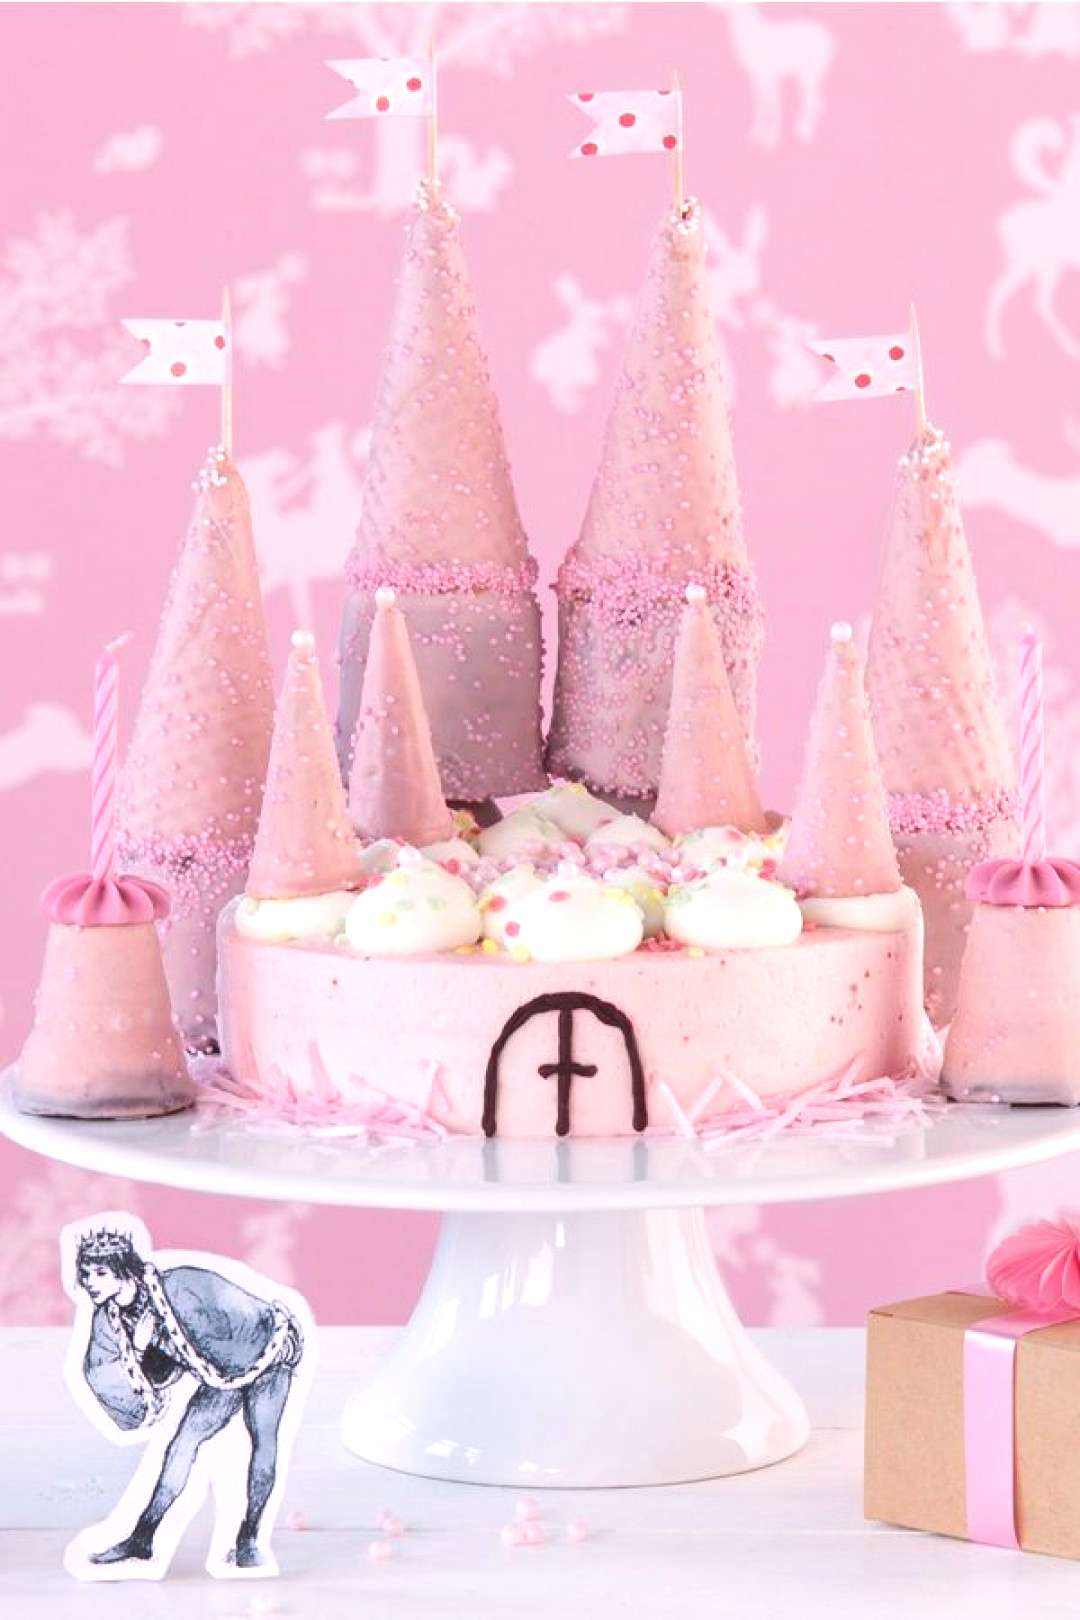 Childrens birthday cake for cute princesses and wild pirates - -